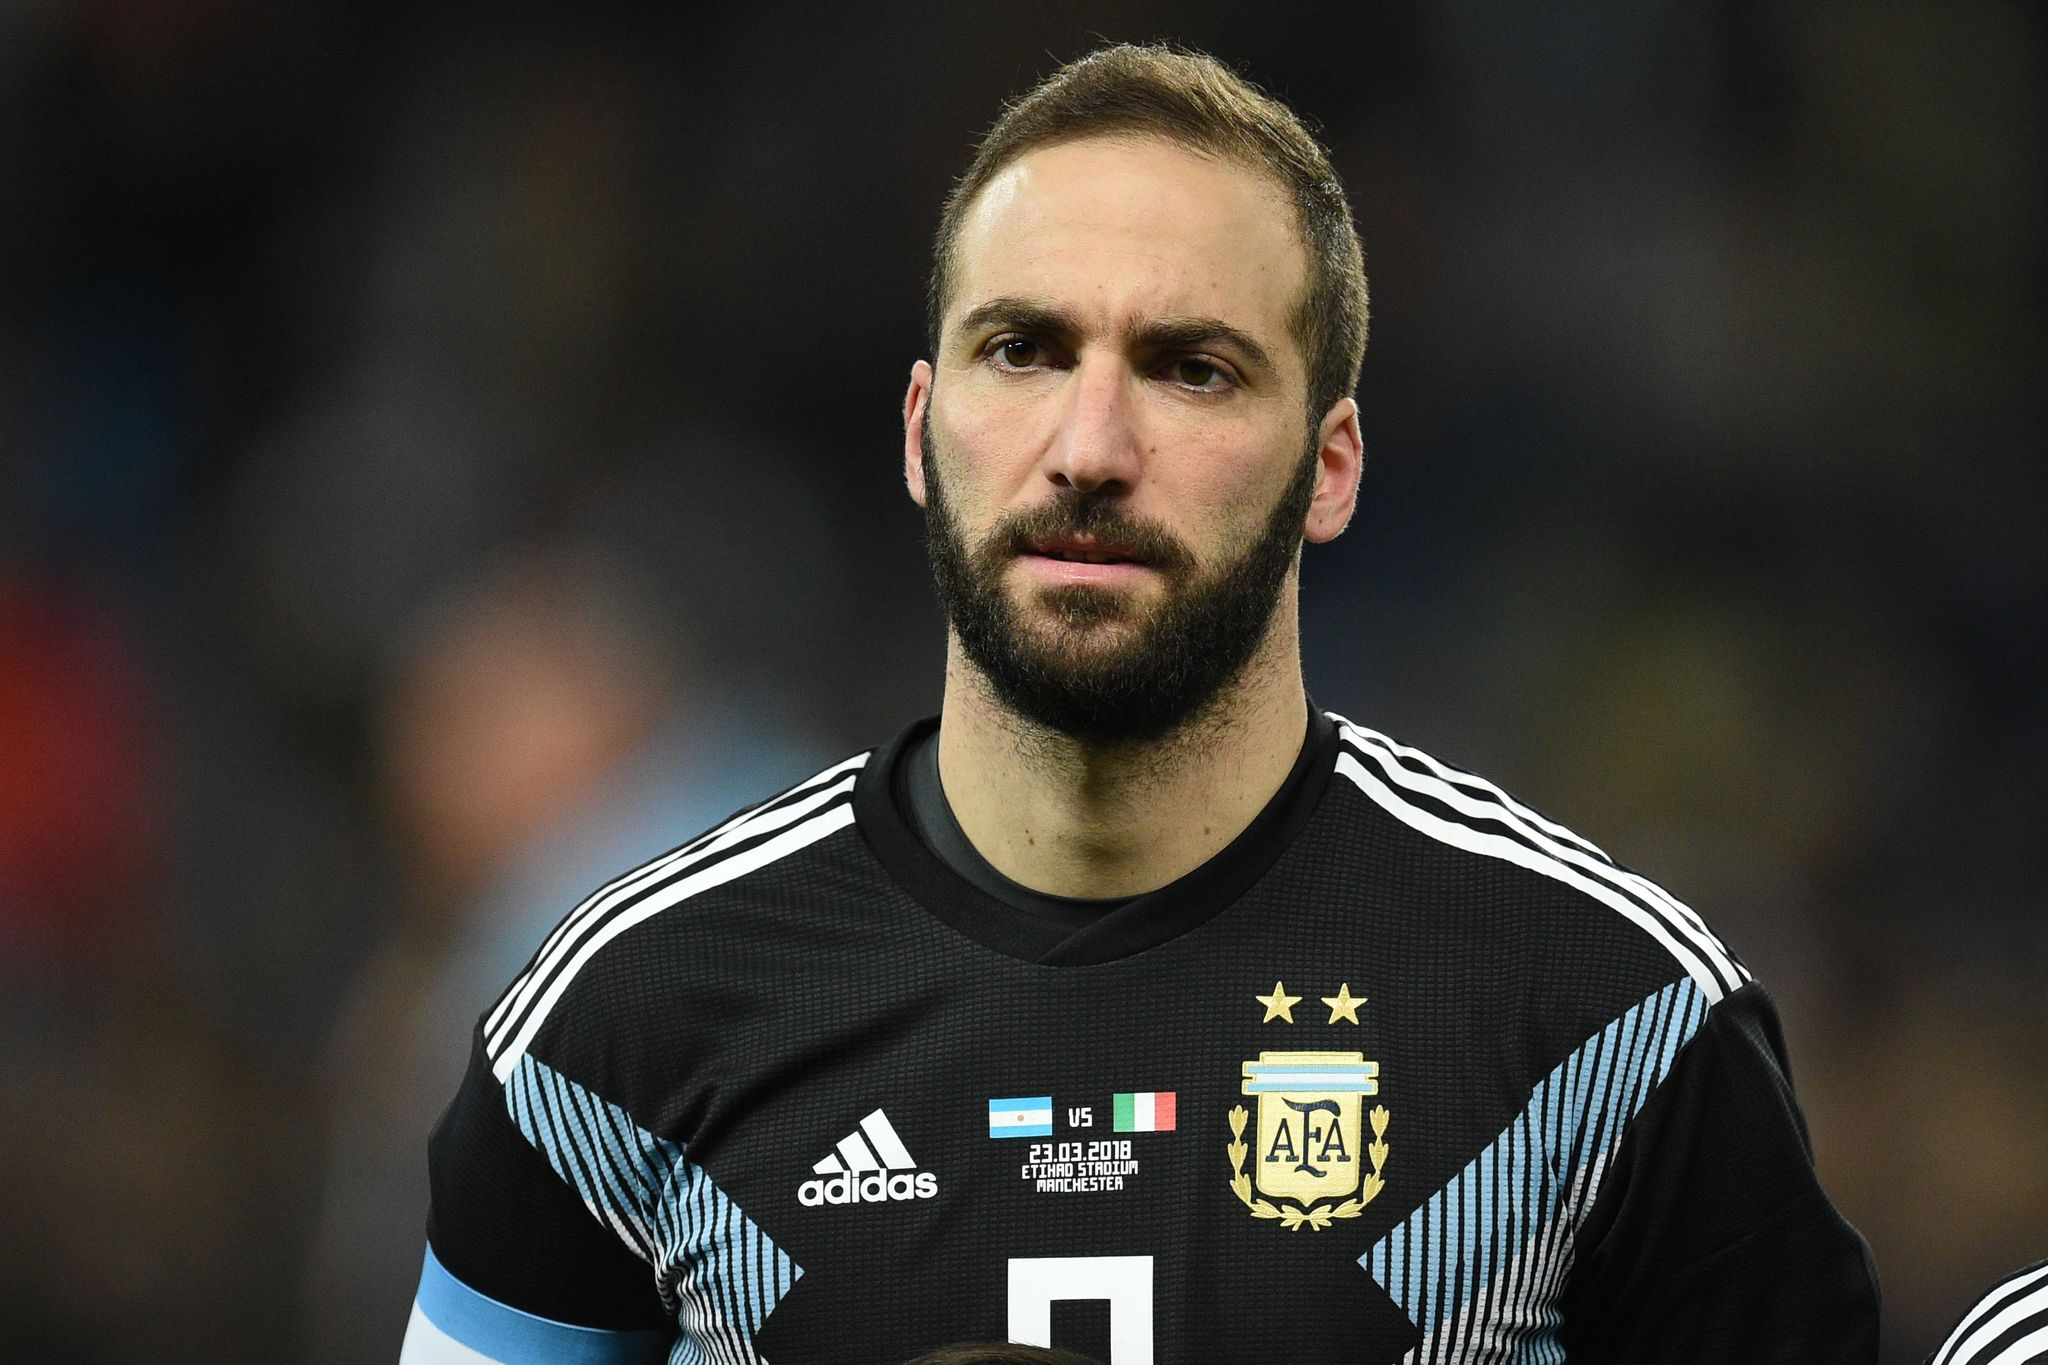 Transfer Market Higuain S Potential Switch And Atletico S Continued Interest In Giroud Dominate Tuesday S Transfer Talk Marca In English